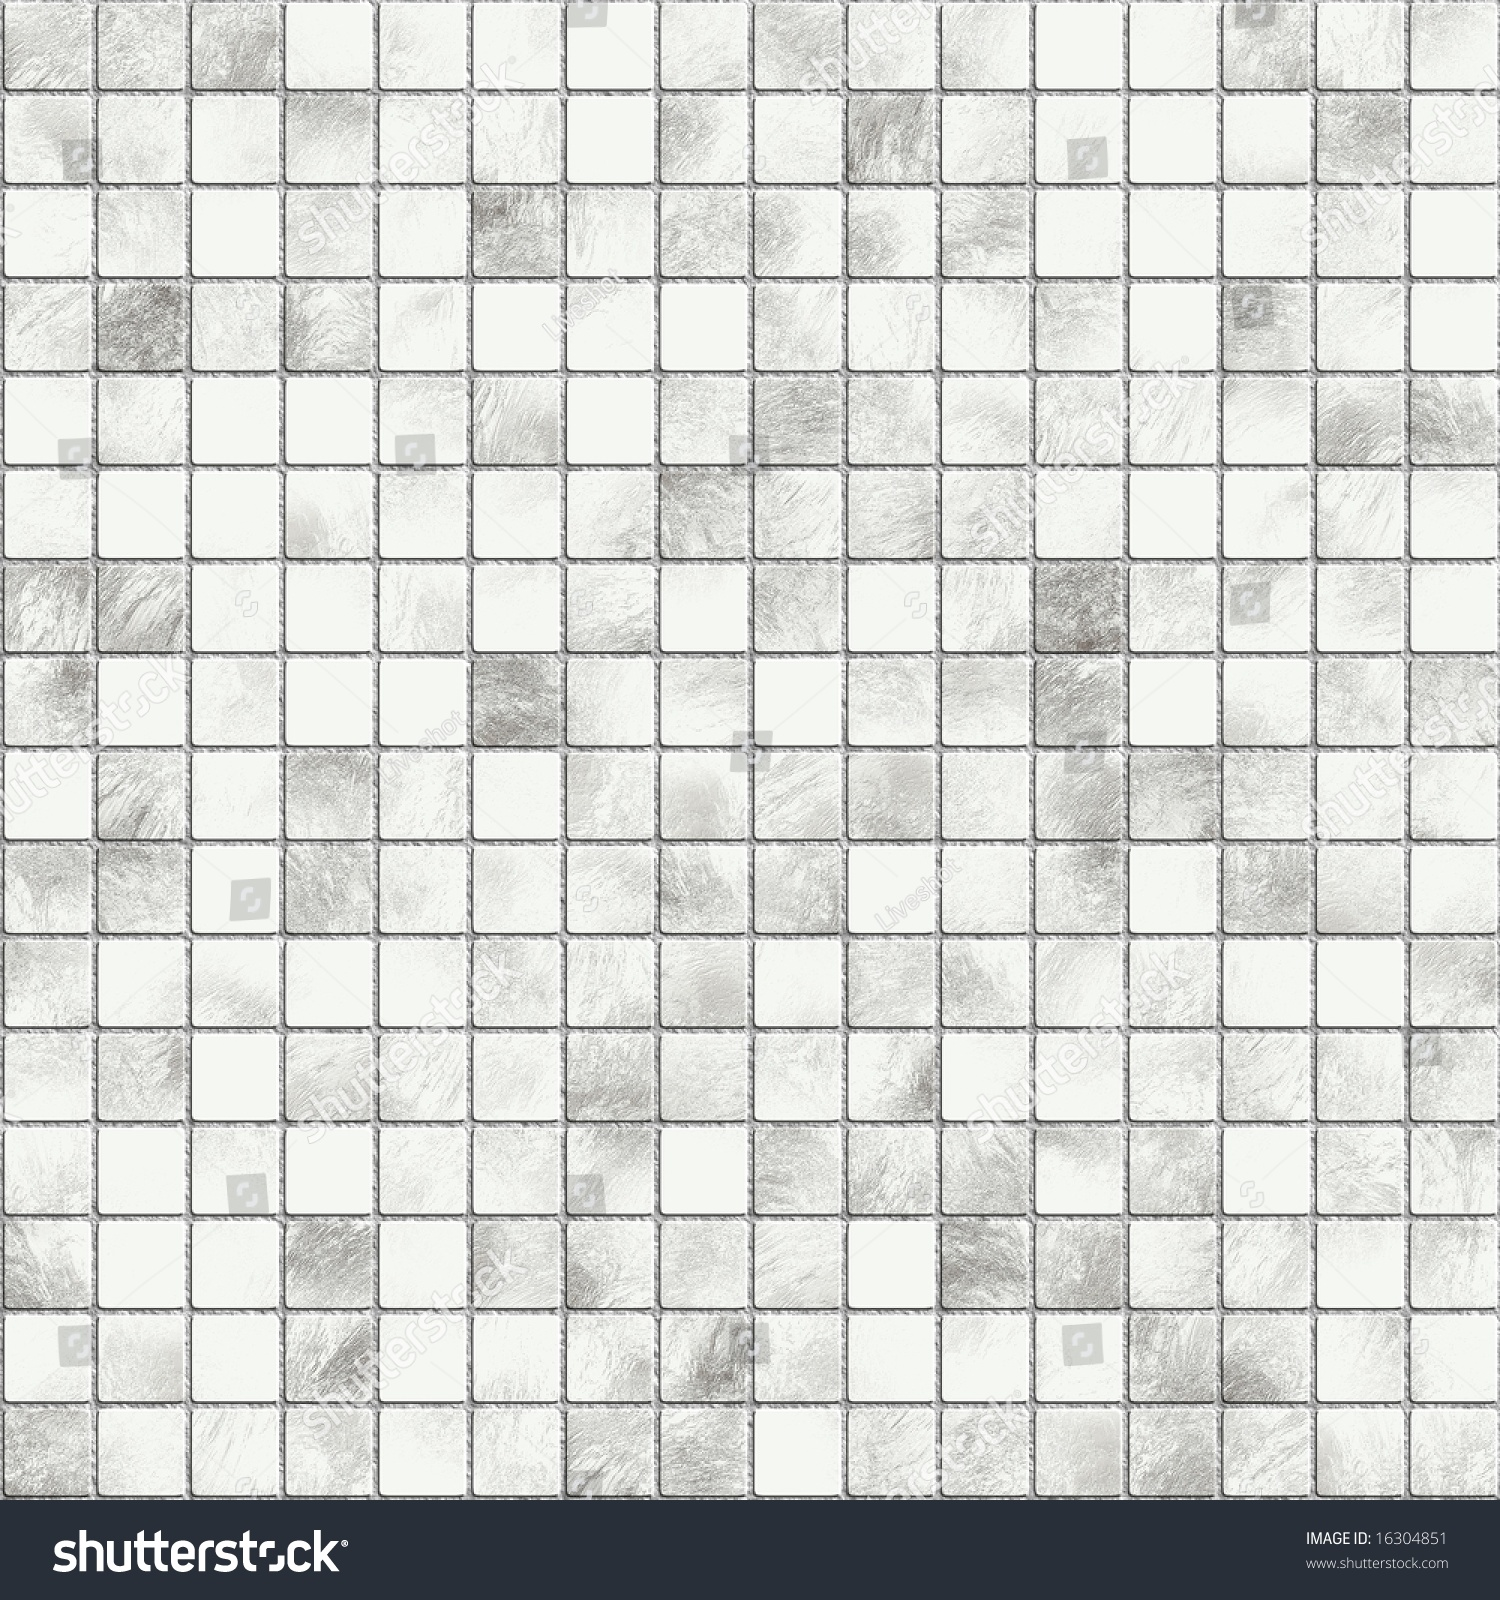 Creative White Floor Tile Texture Seamless White Seamless Textures Floor